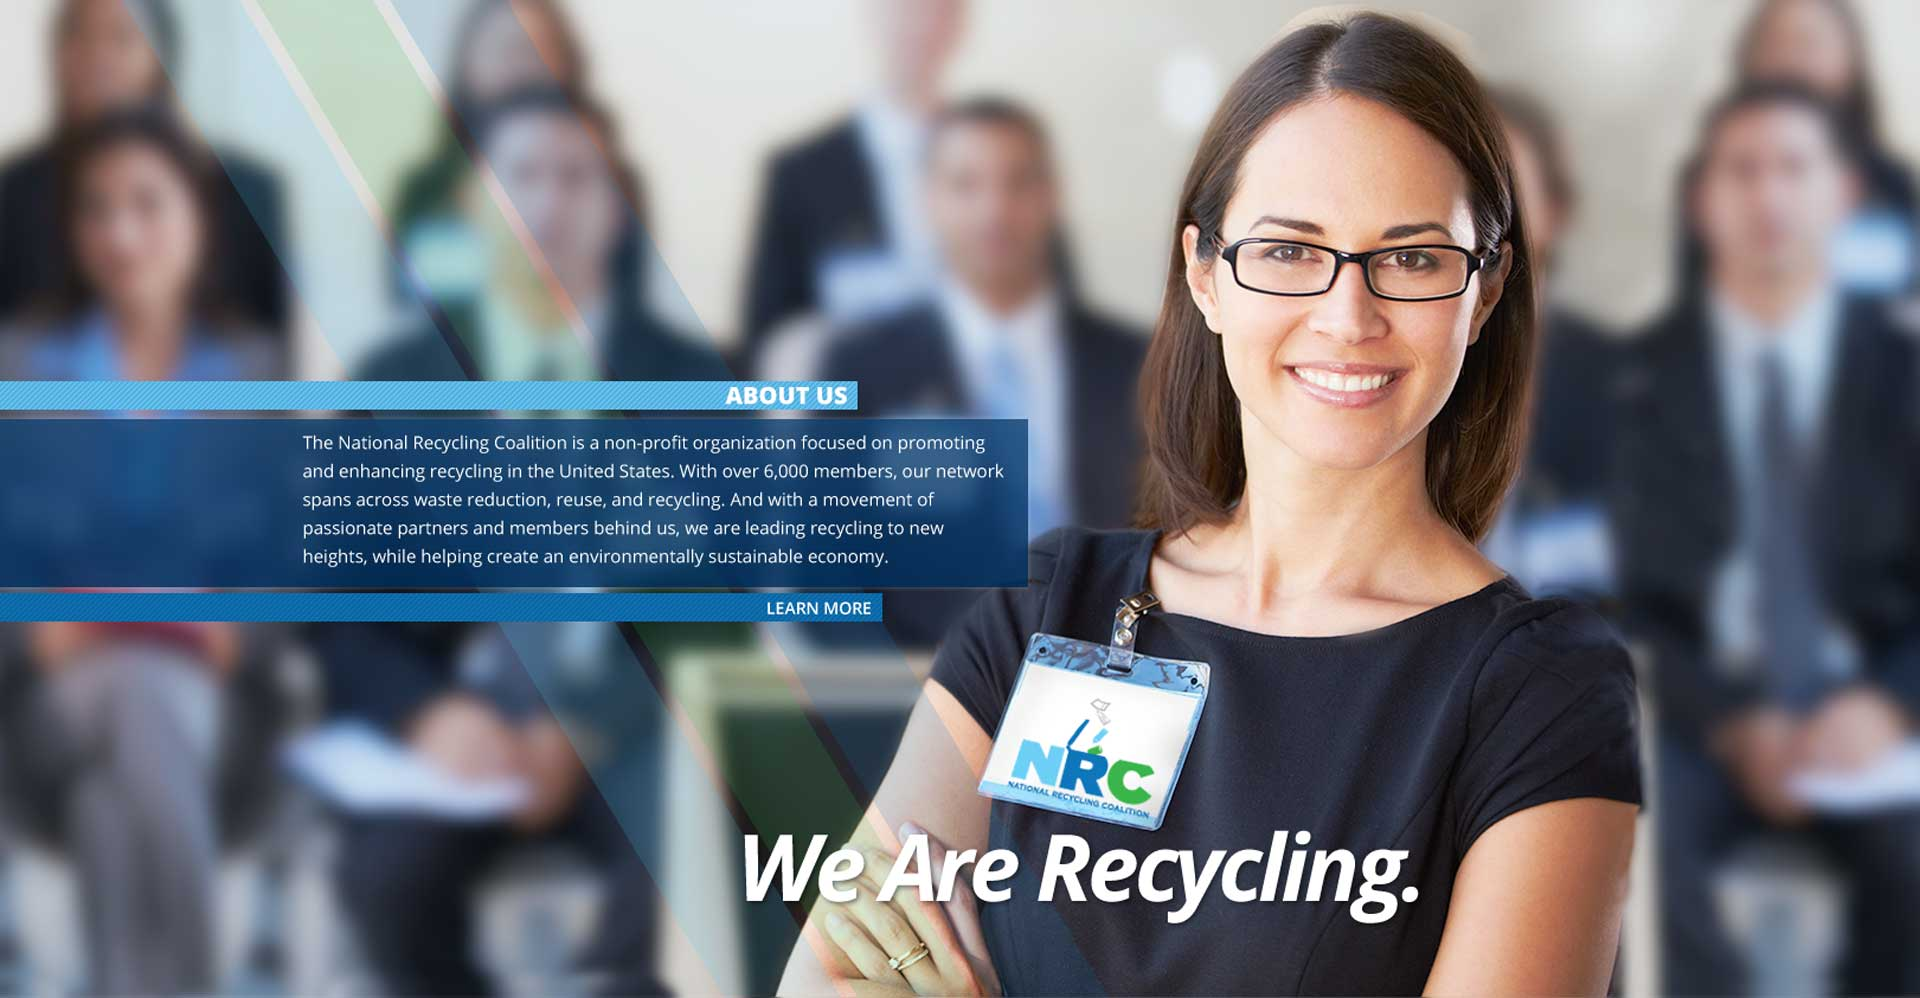 About NRC - We Are Recycling